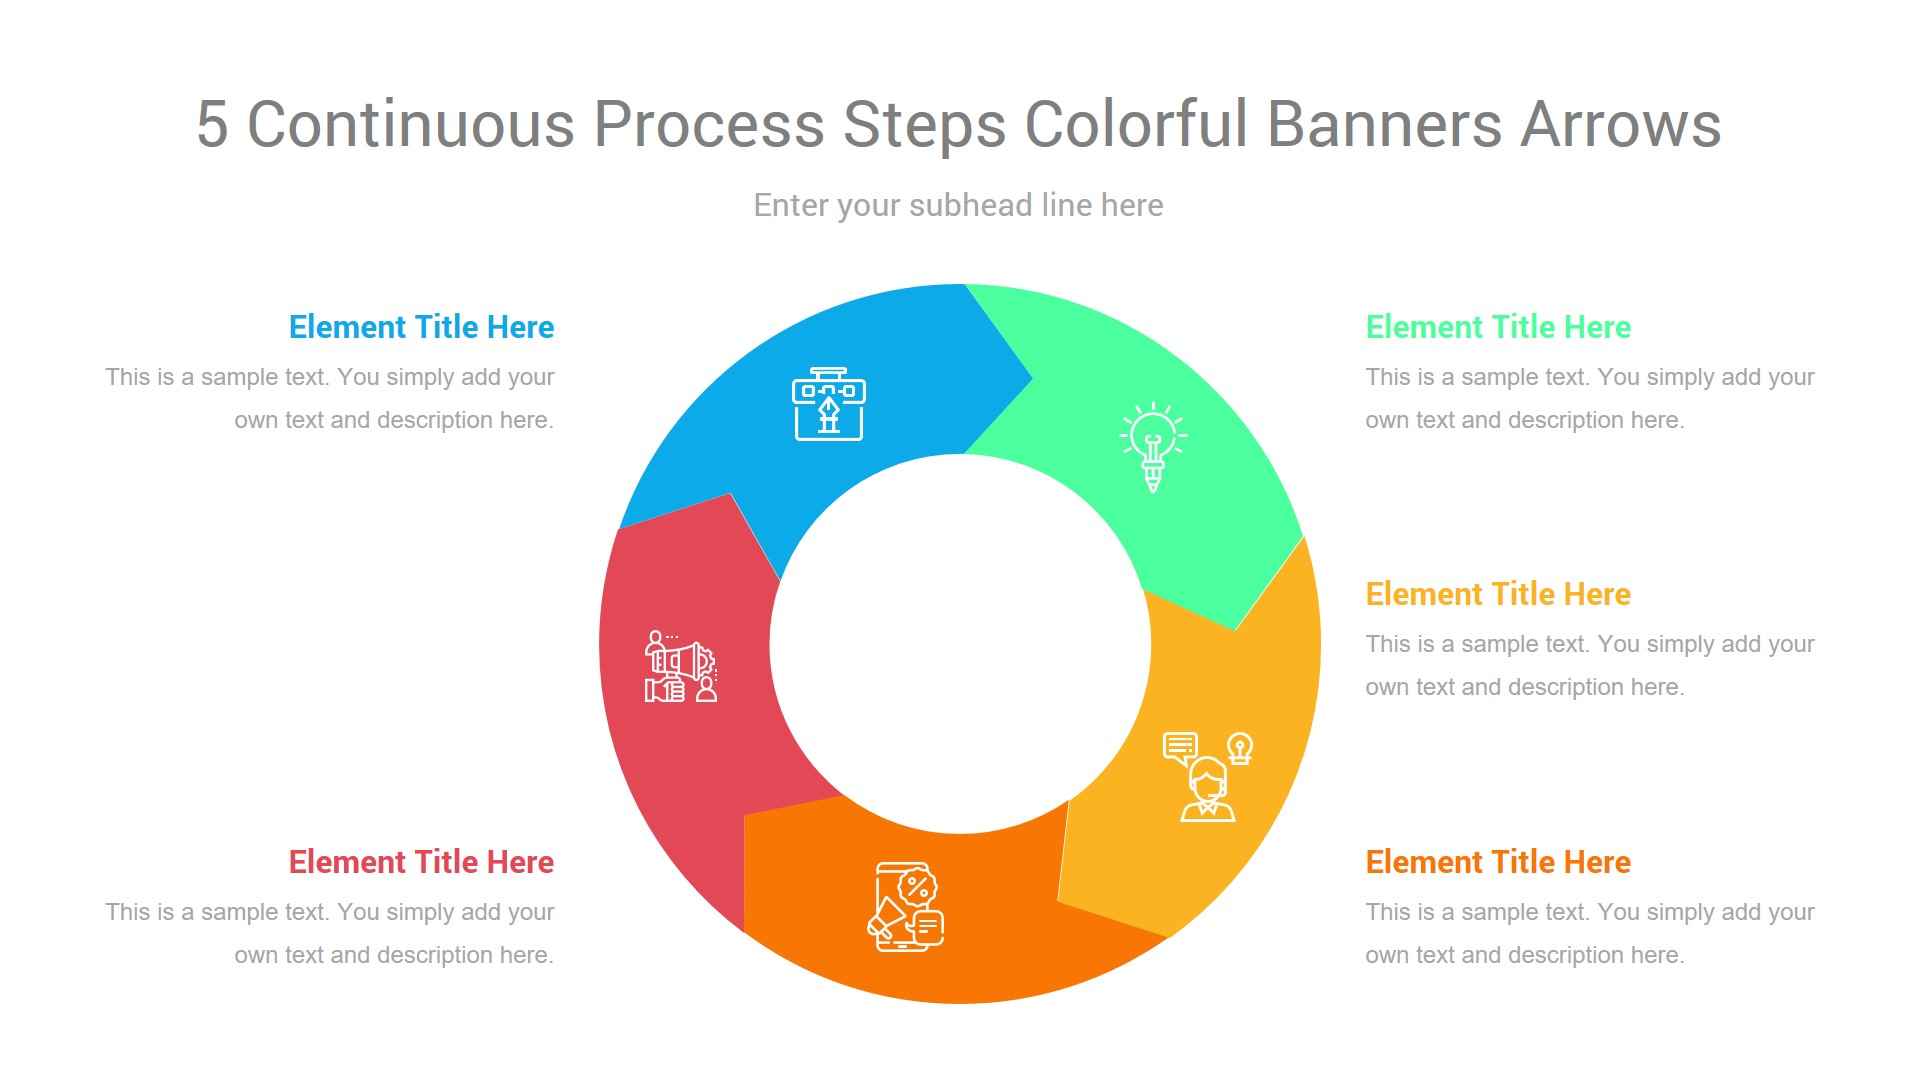 5 Continuous Process Steps Colorful Banners Arrows